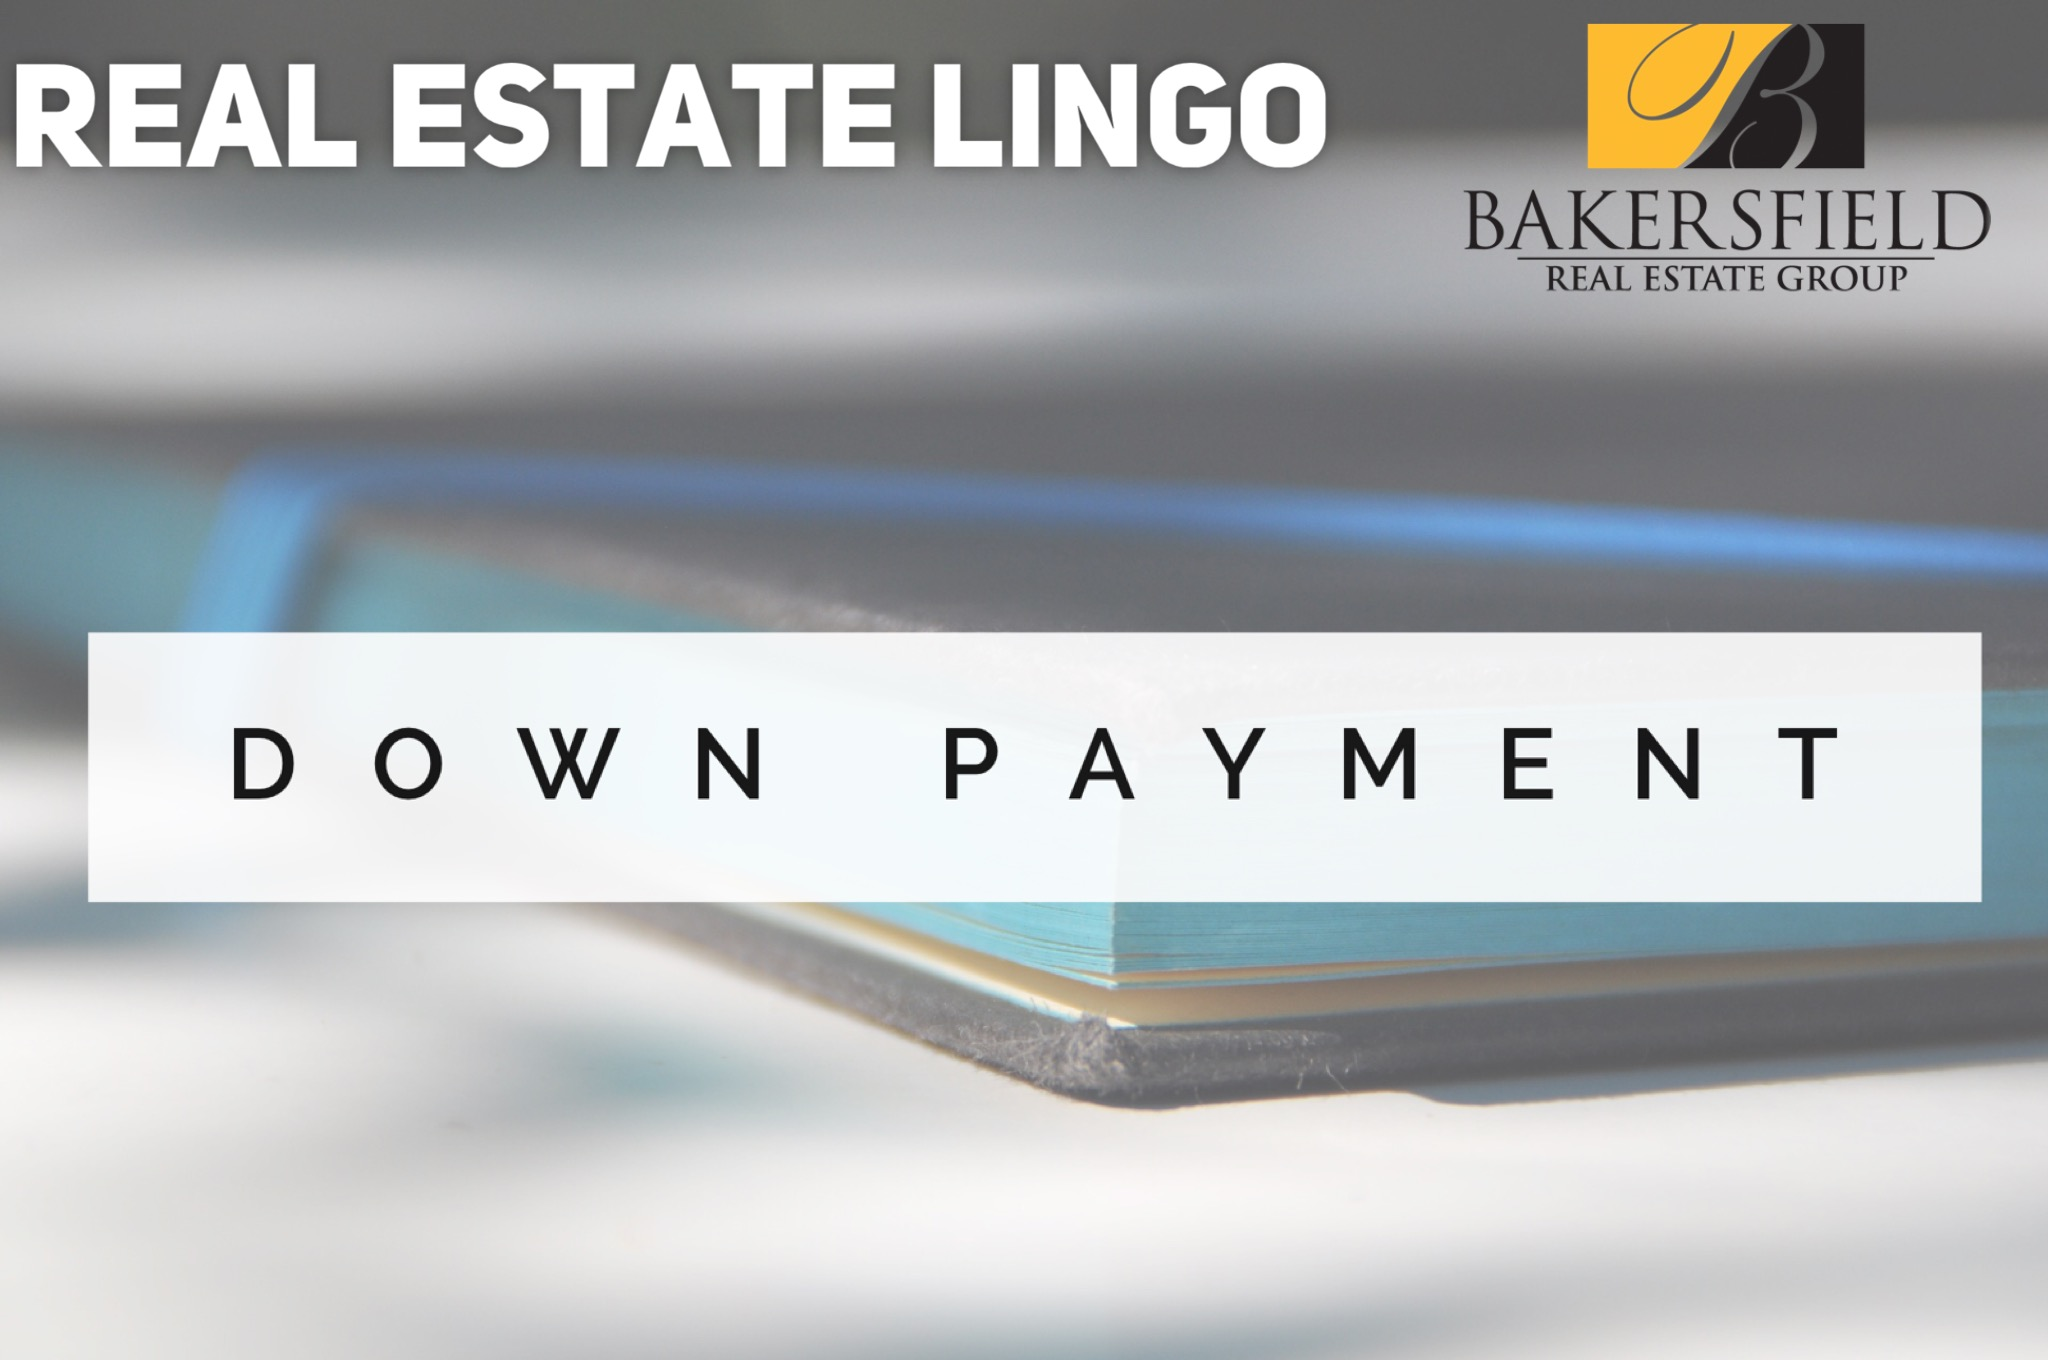 How miuch is a Down Payment on a Home? Linda Banales 661-704-4244